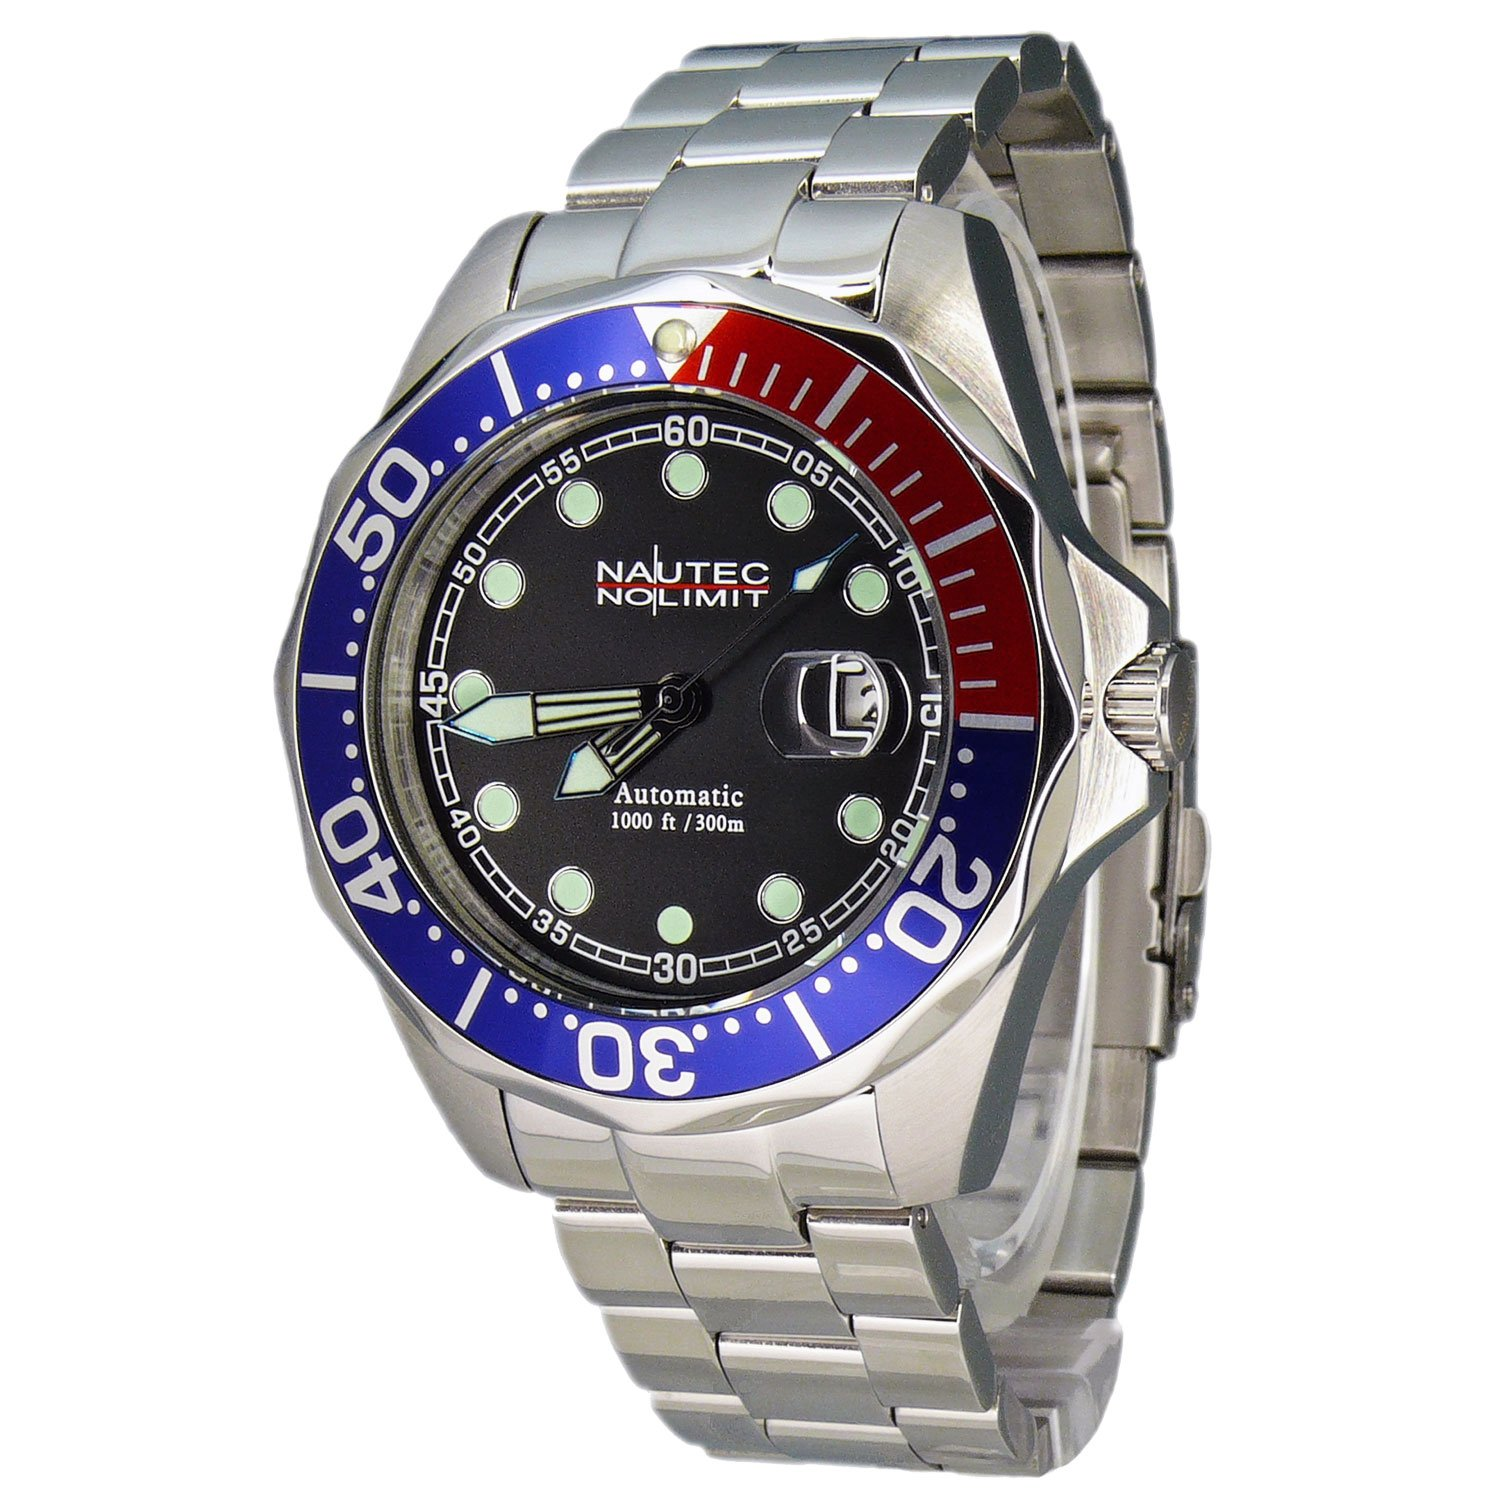 Nautec No Limit Herren-Armbanduhr Deep Sea Bravo Analog Automatik DSB AT-STSTRDBLBK